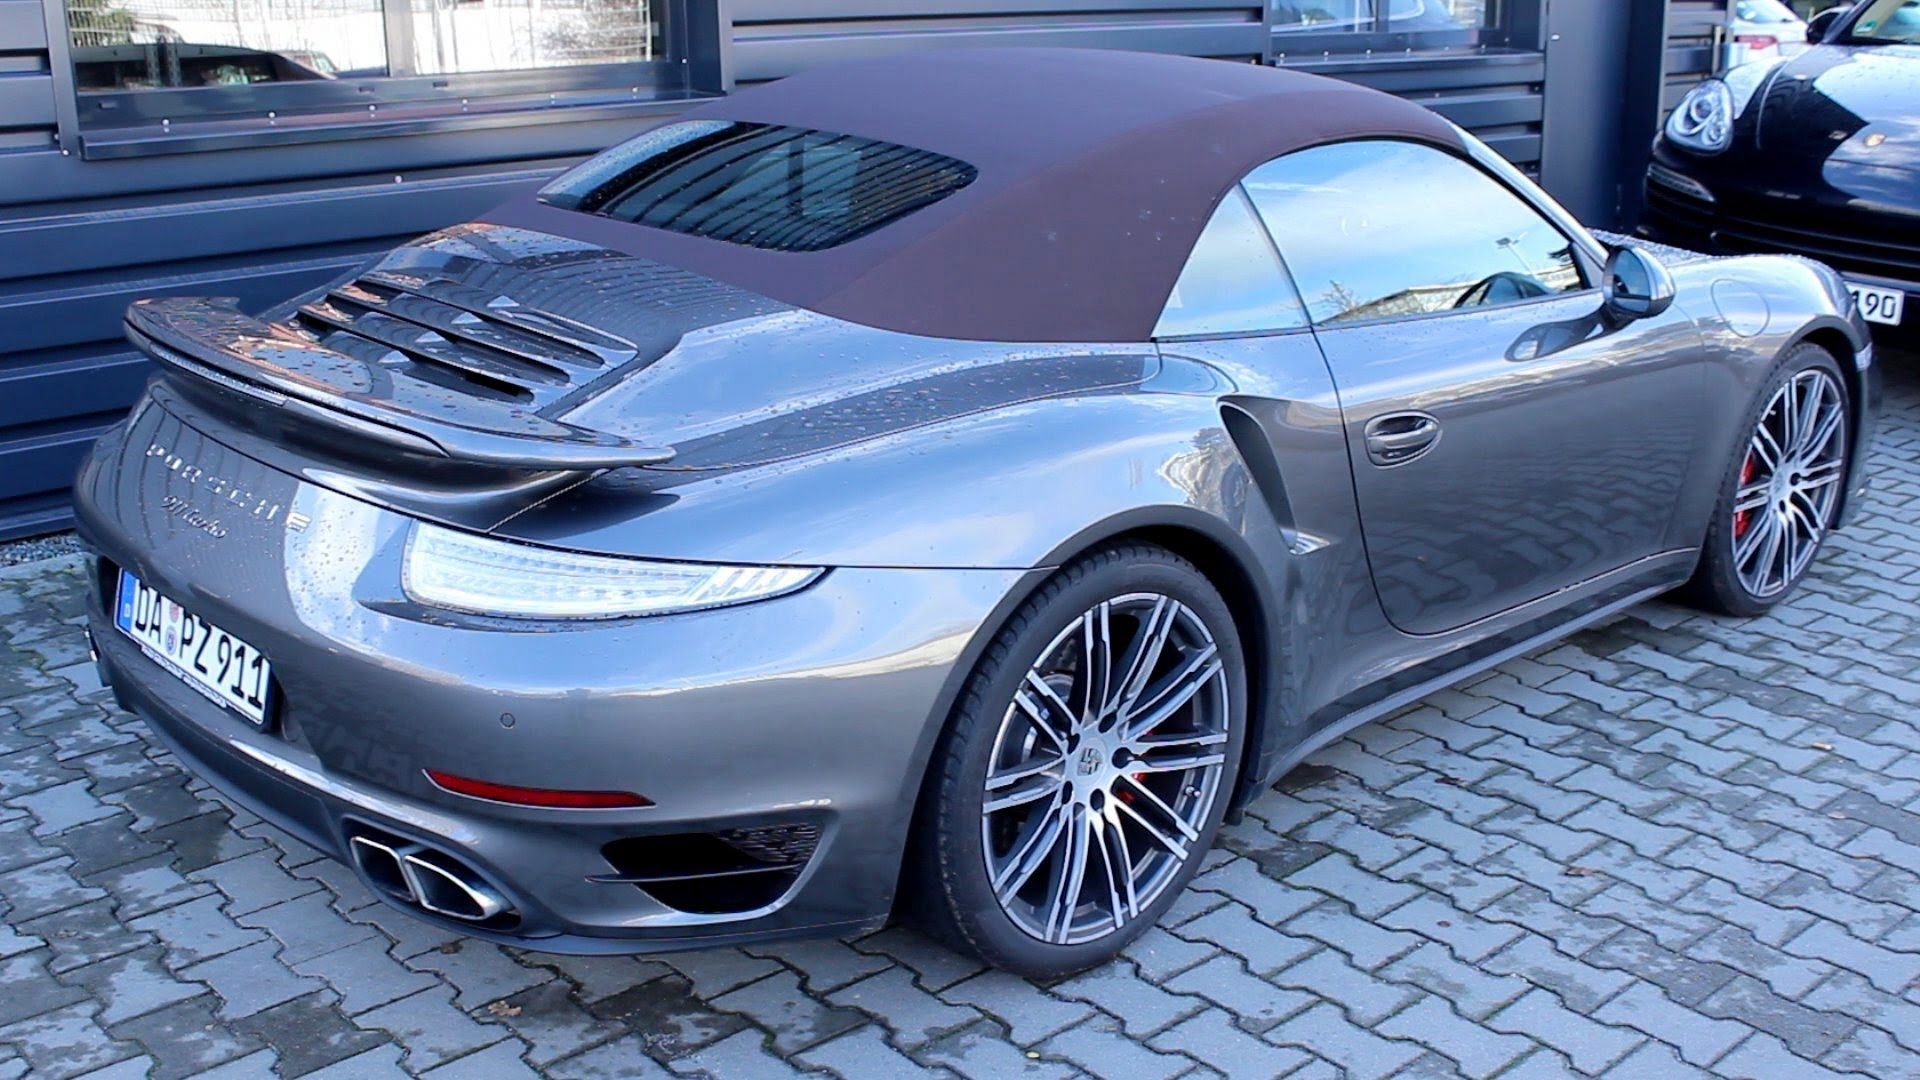 2014 porsche 911 cabrio 991 pictures information and specs auto databa. Black Bedroom Furniture Sets. Home Design Ideas